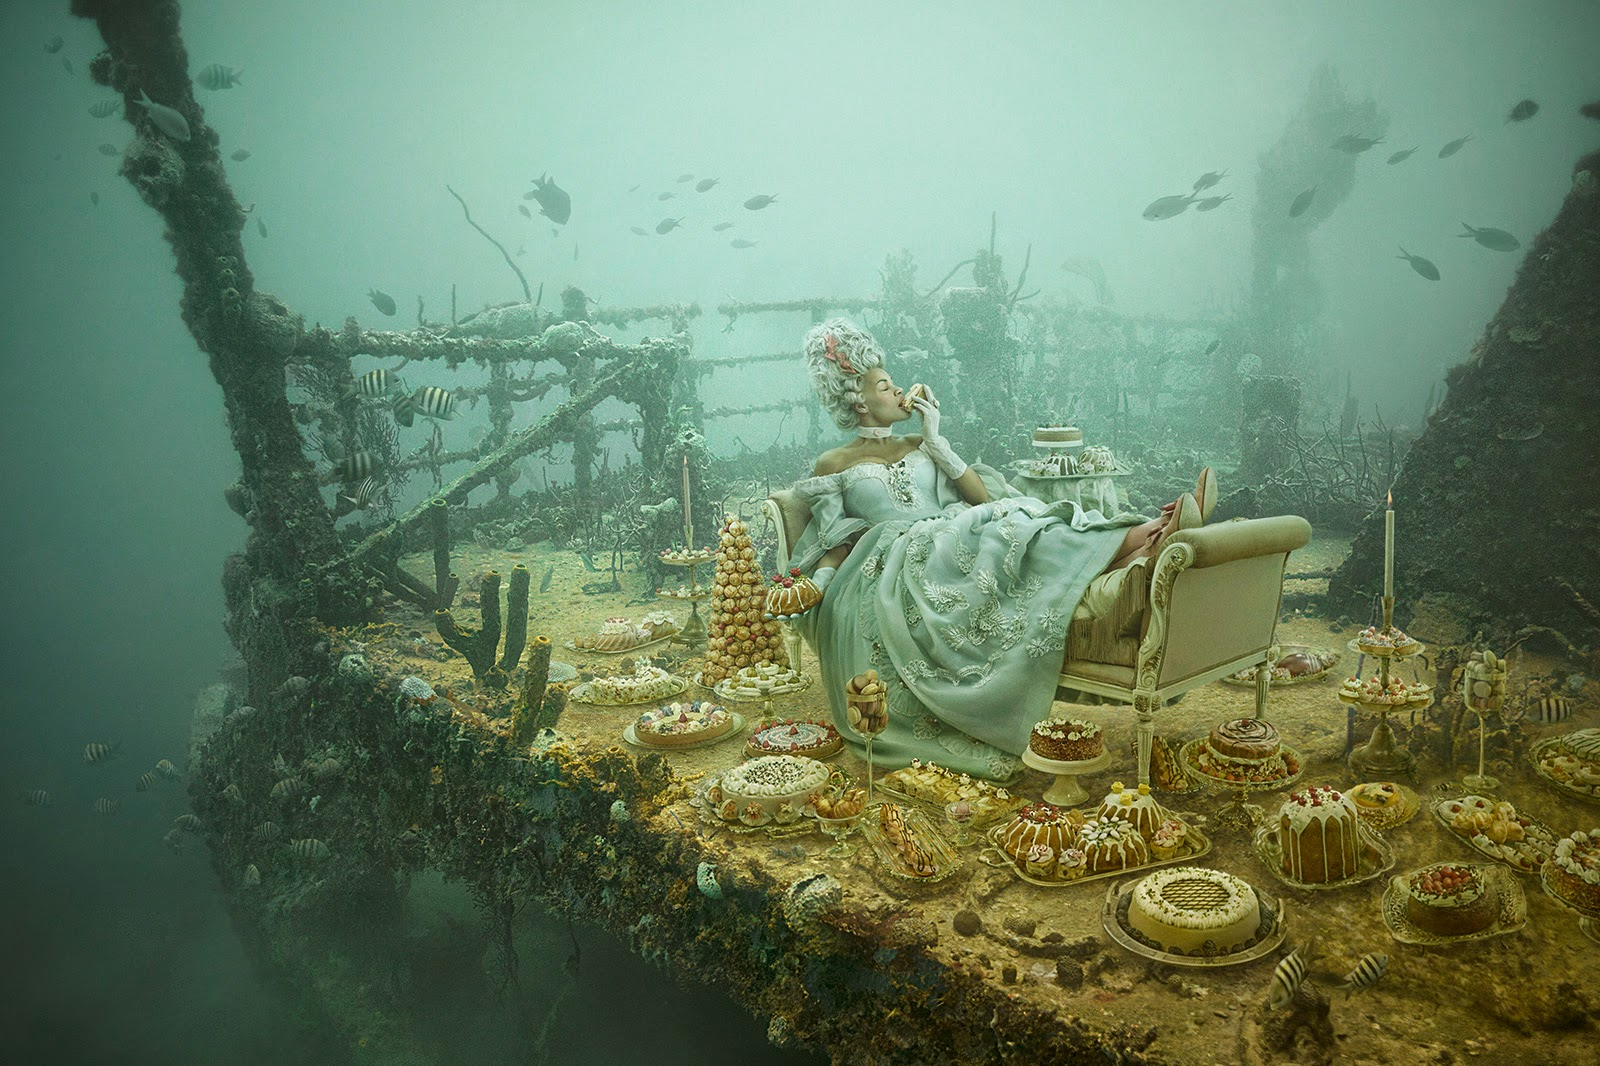 12-Andreas-Franke-Surreal-Artificial-Reef-Photography-www-designstack-co